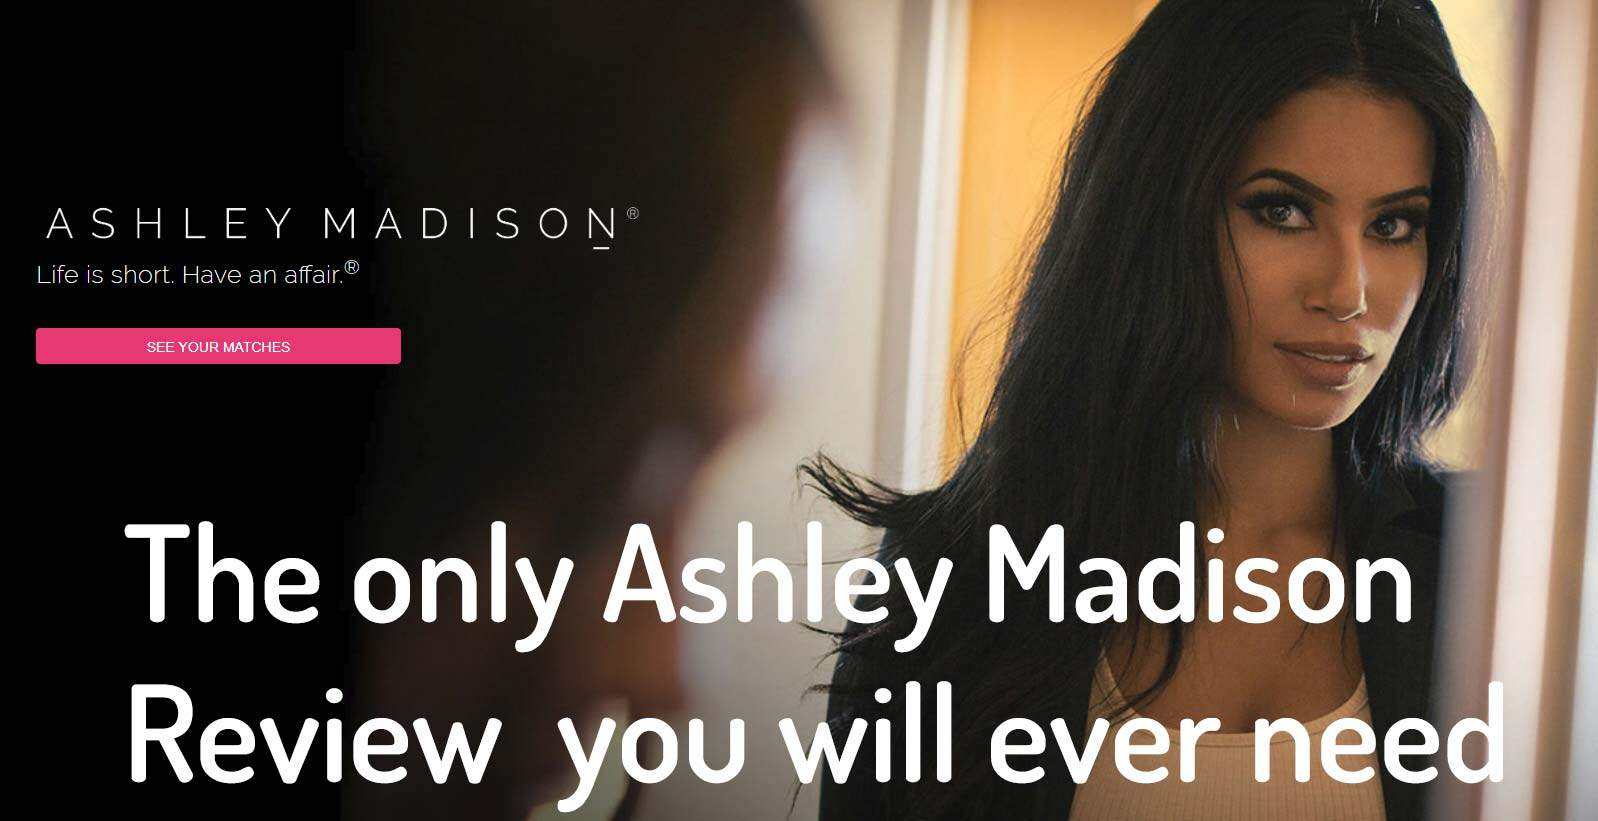 The Only Ashley Madison Review You'll Ever Need